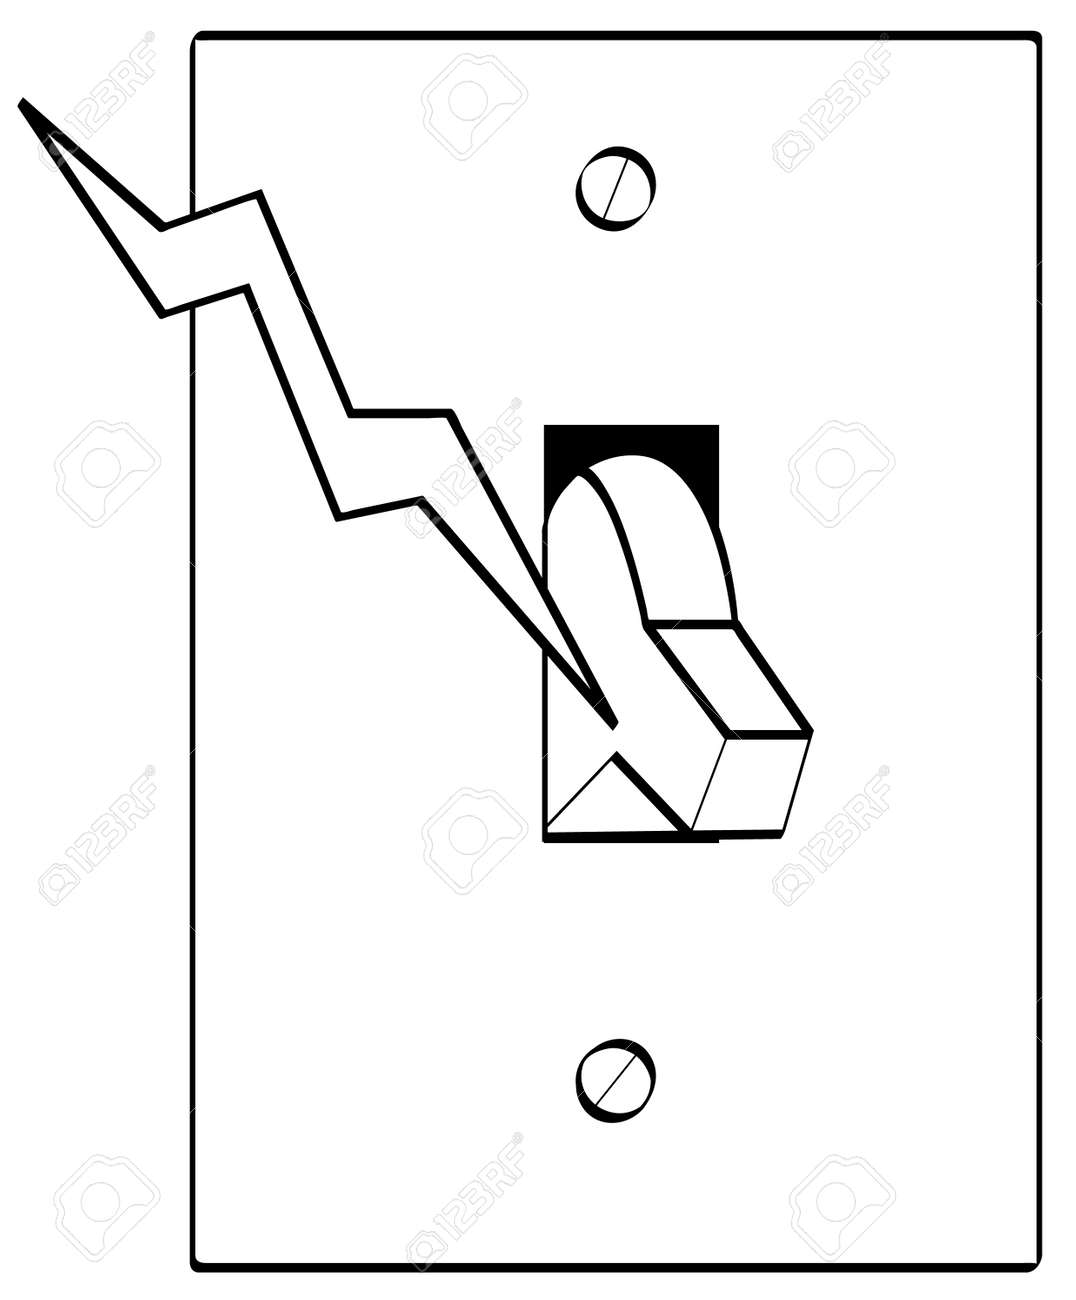 light switch clipart black and white. outline of electrical light switch with bolt electricity vector stock 2893754 clipart black and white